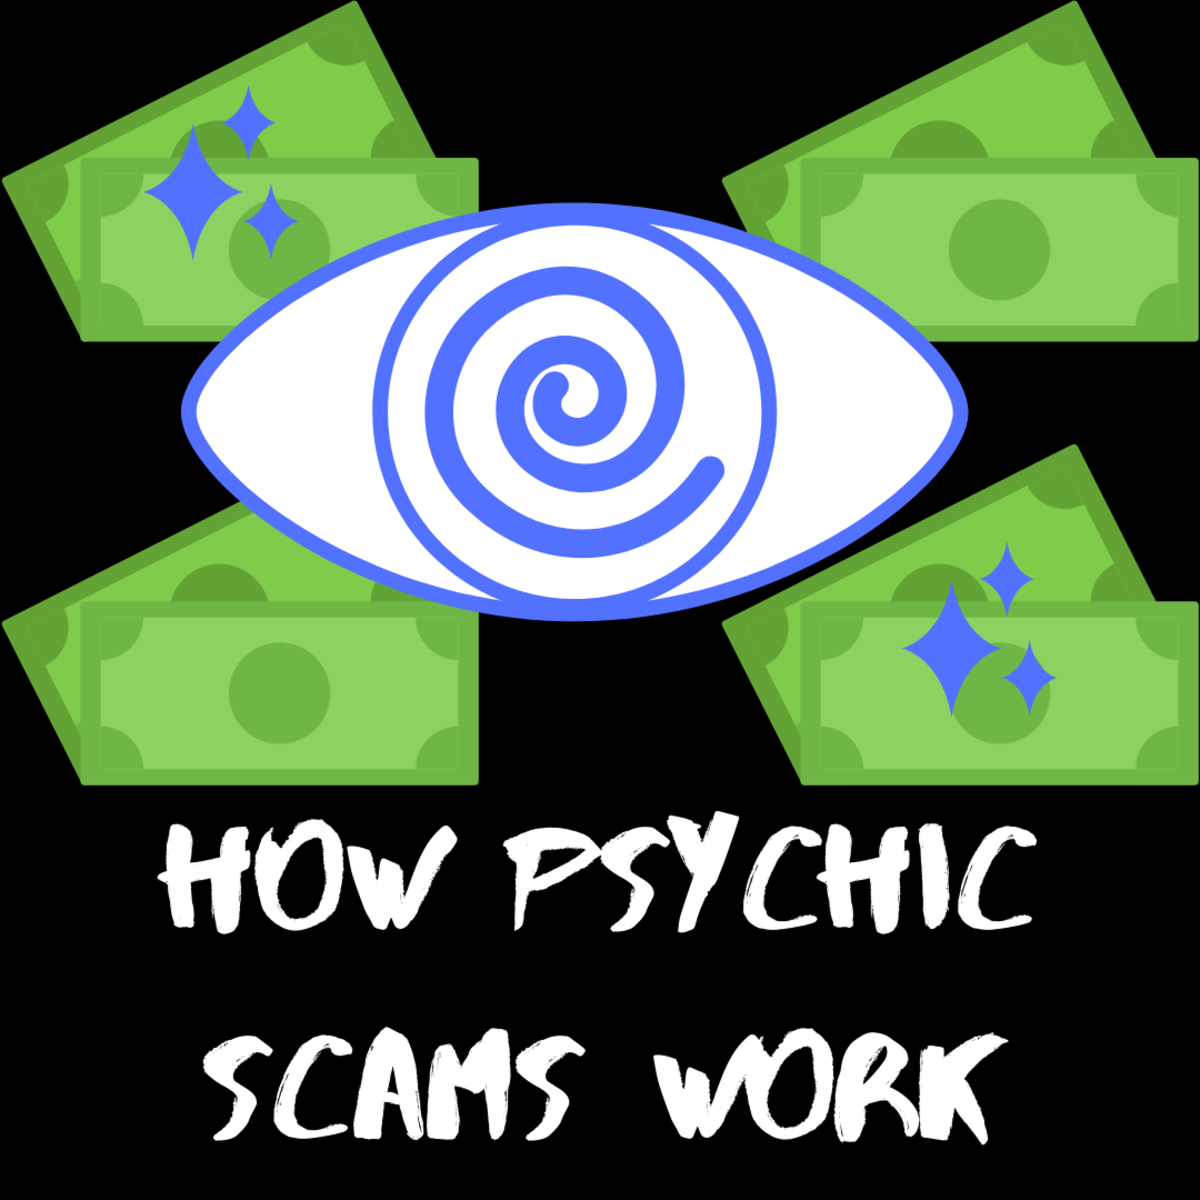 How to Avoid Getting Conned and Understand How Psychic Scams Work